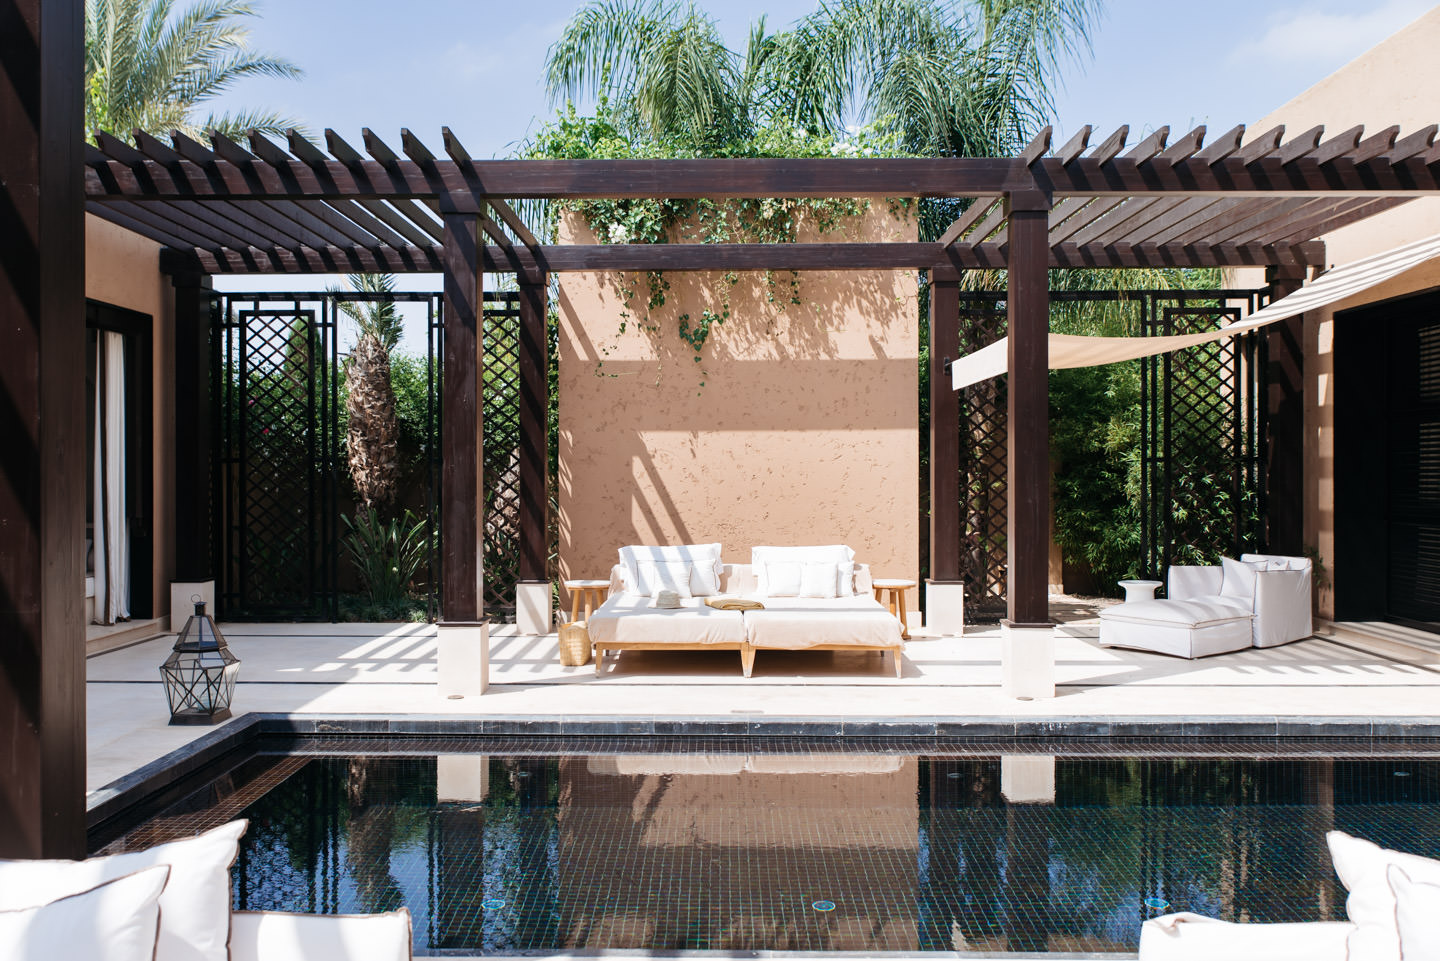 Blog-Mode-And-The-City-Lifestyle-Le-Madarin-Oriental-Marrakech